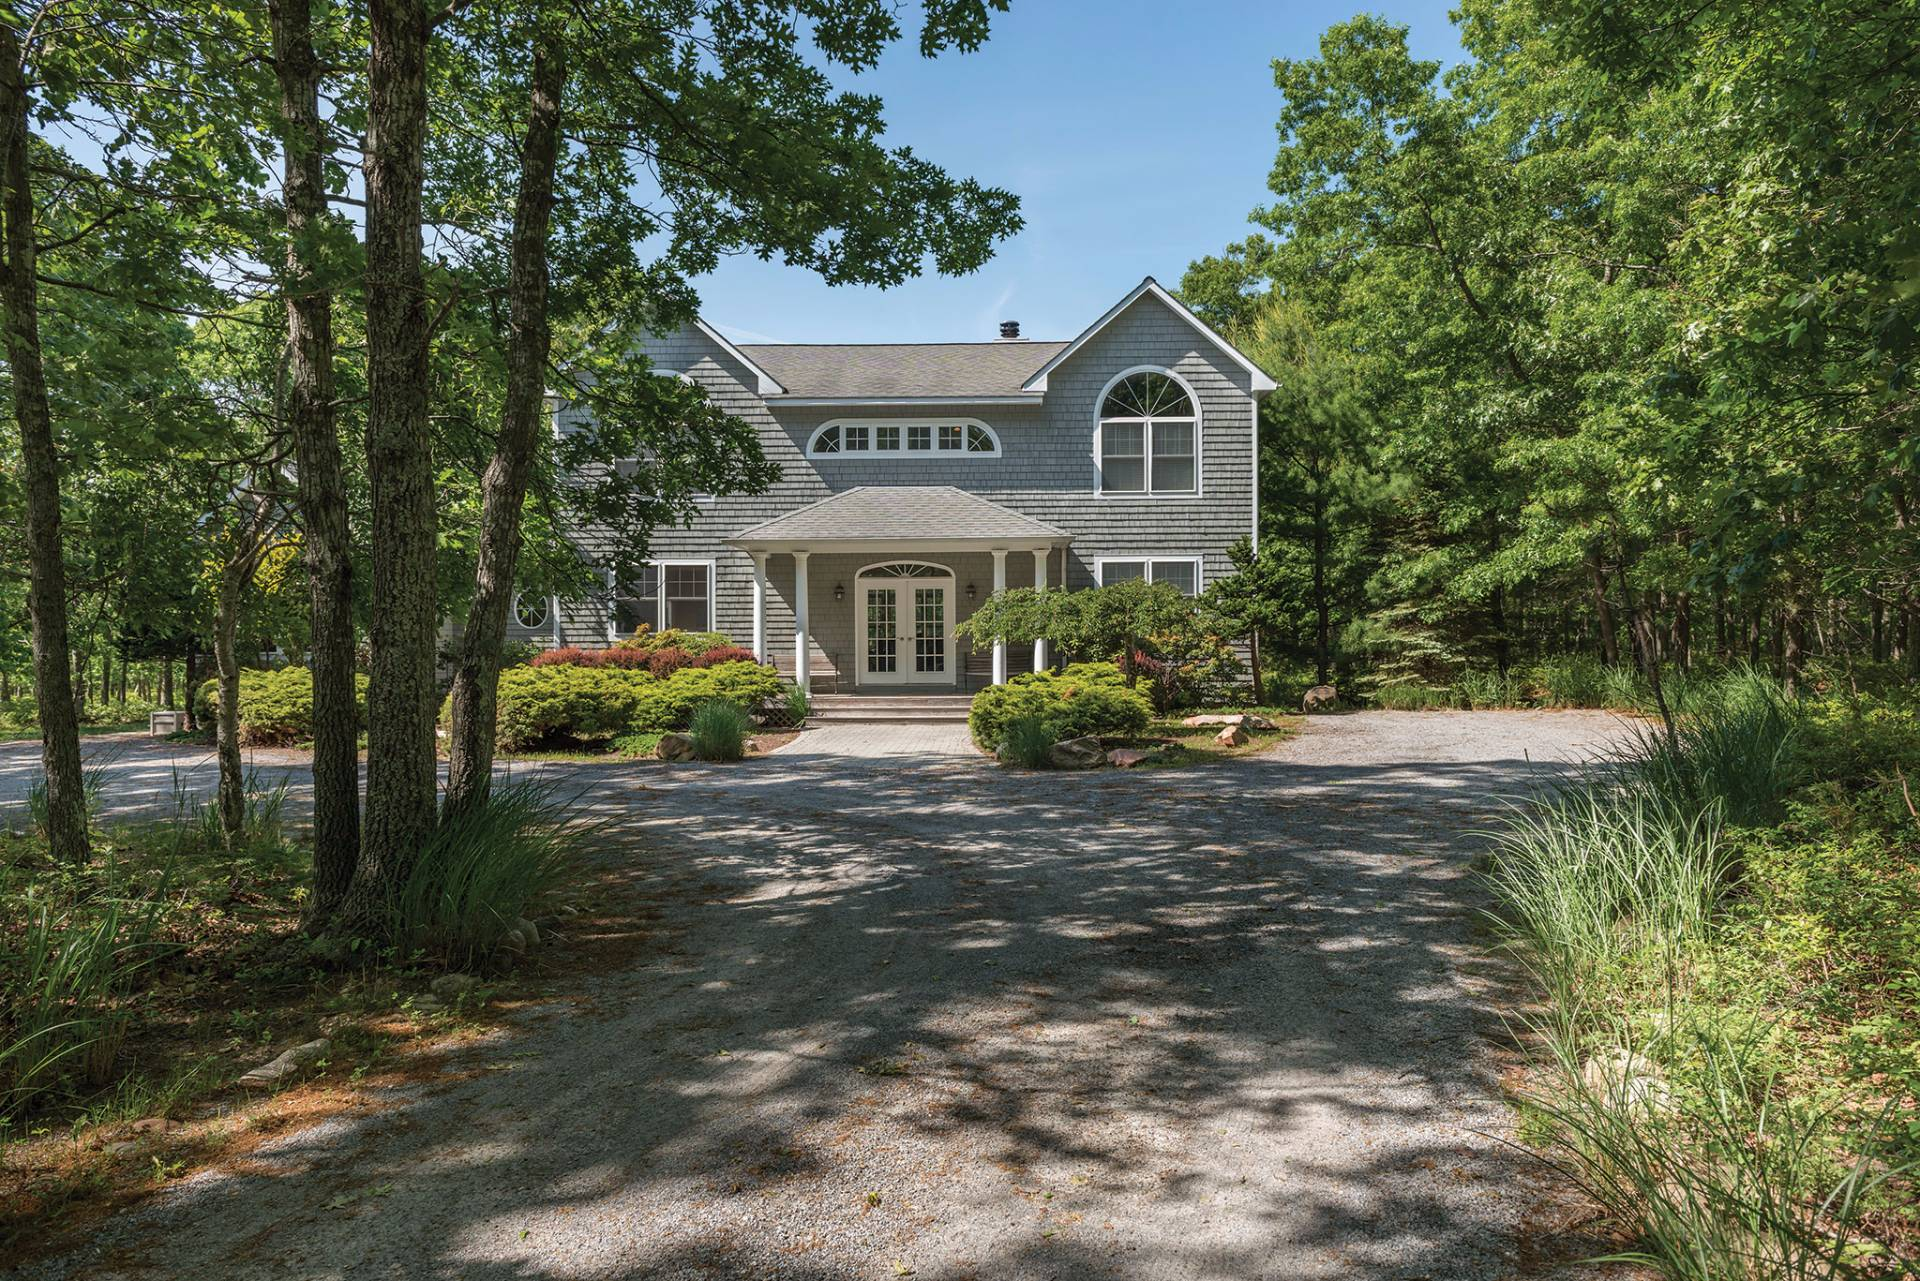 Single Family Home for Sale at 5+ Acres With Pool, Tennis, Privacy And So Much More! 528 Wainscott Northwest Road, Wainscott, New York